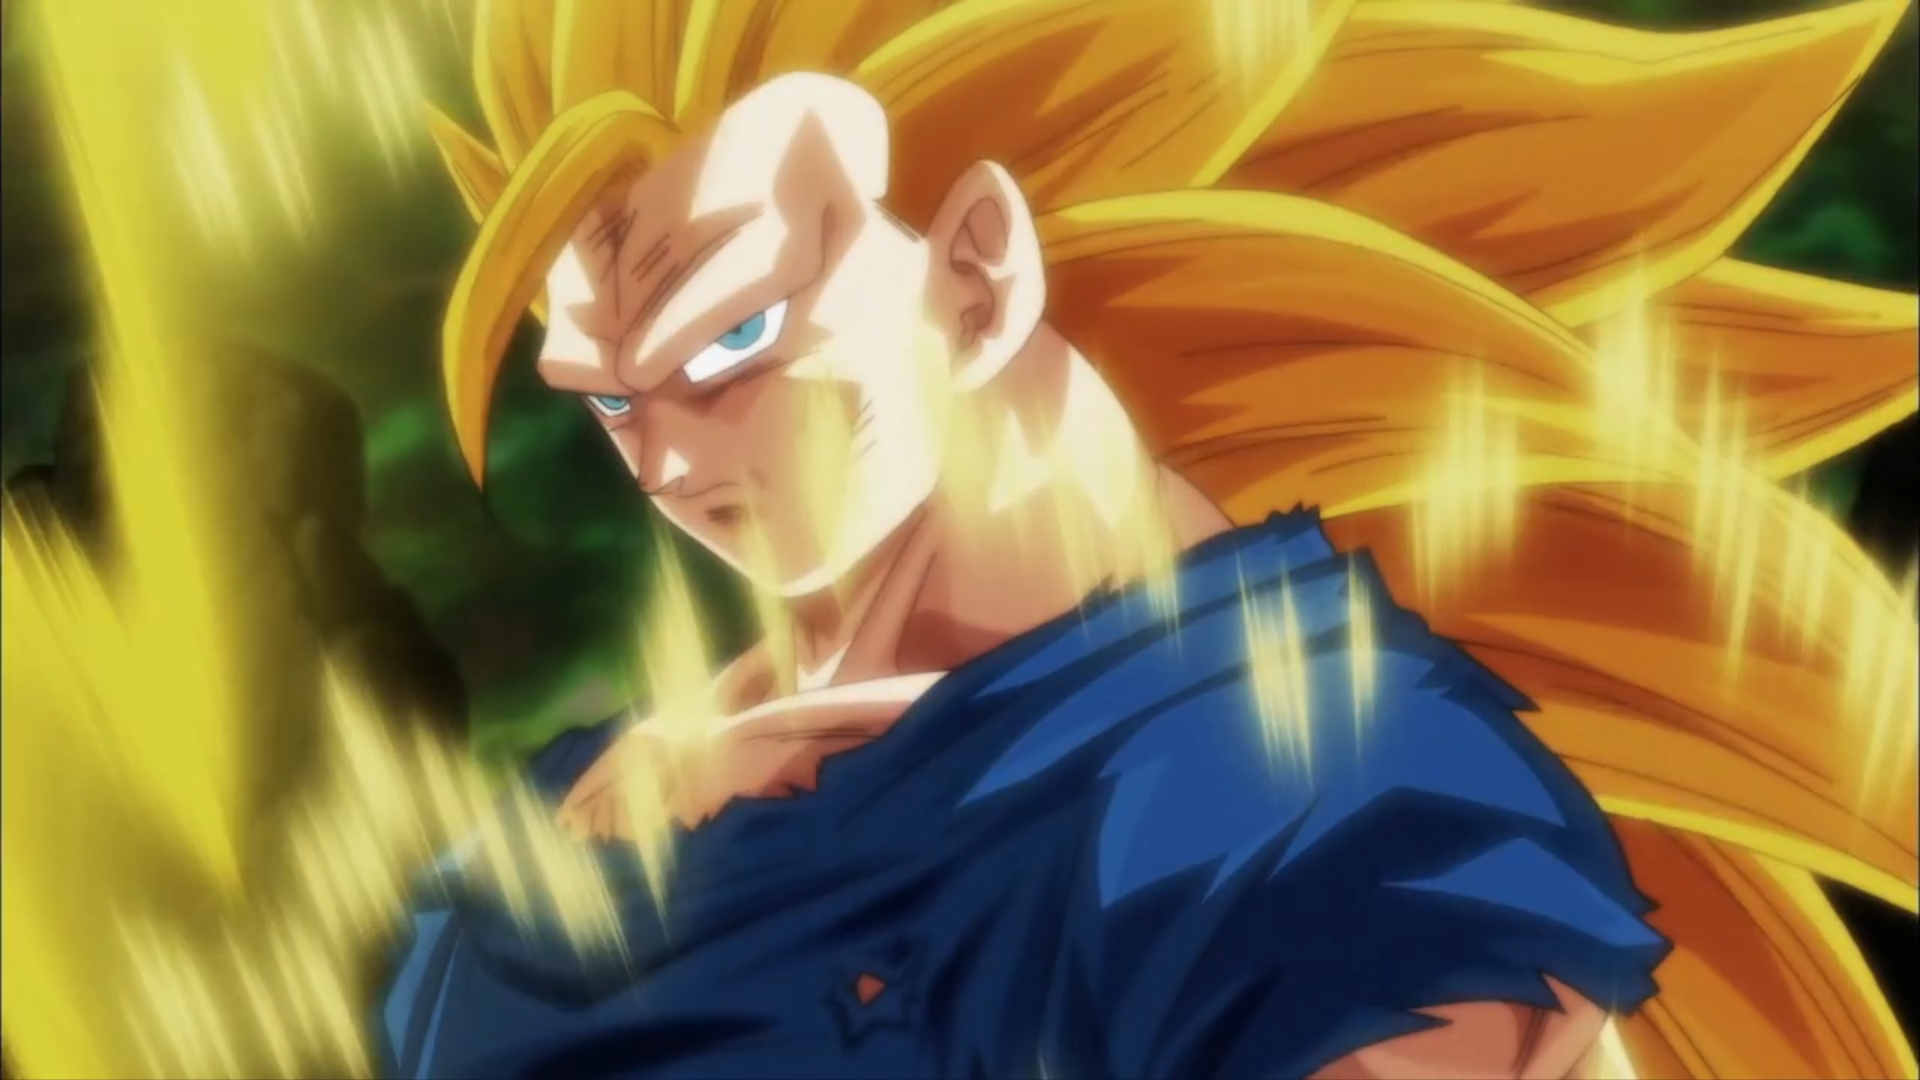 Son Goku Super Saiyan 3 Hd Wallpaper Background Image